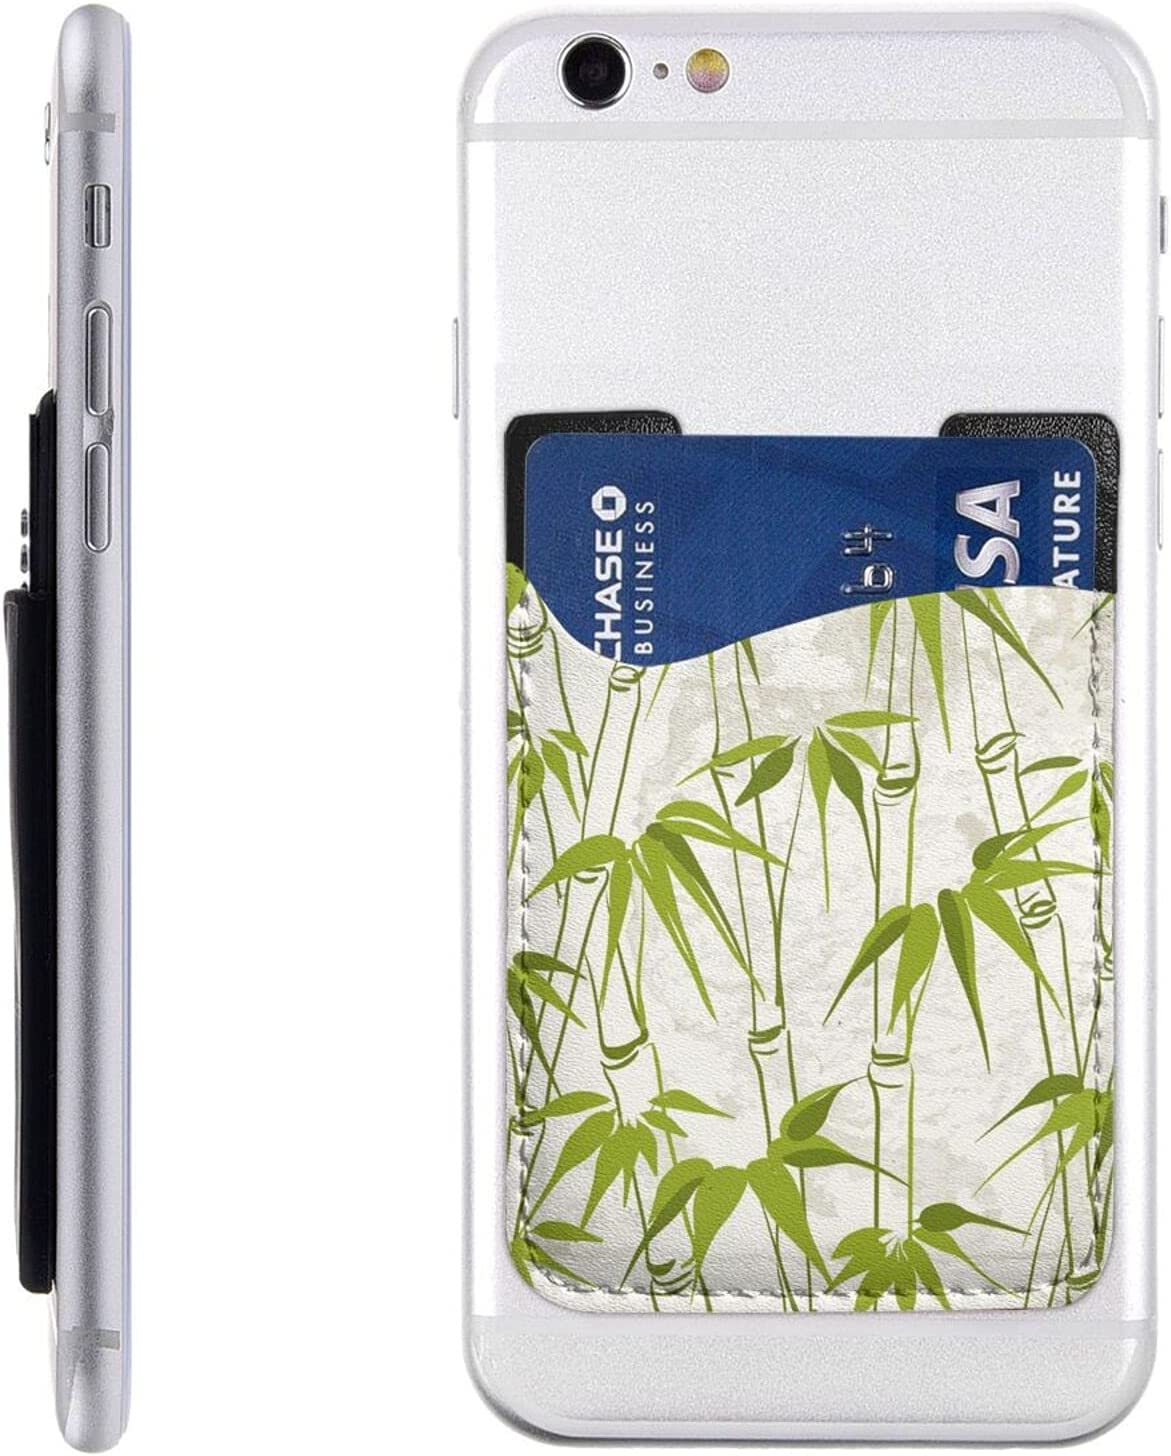 Popular products Green Bamboo Nature Plant Phone On Stick Card Cell All stores are sold Holder